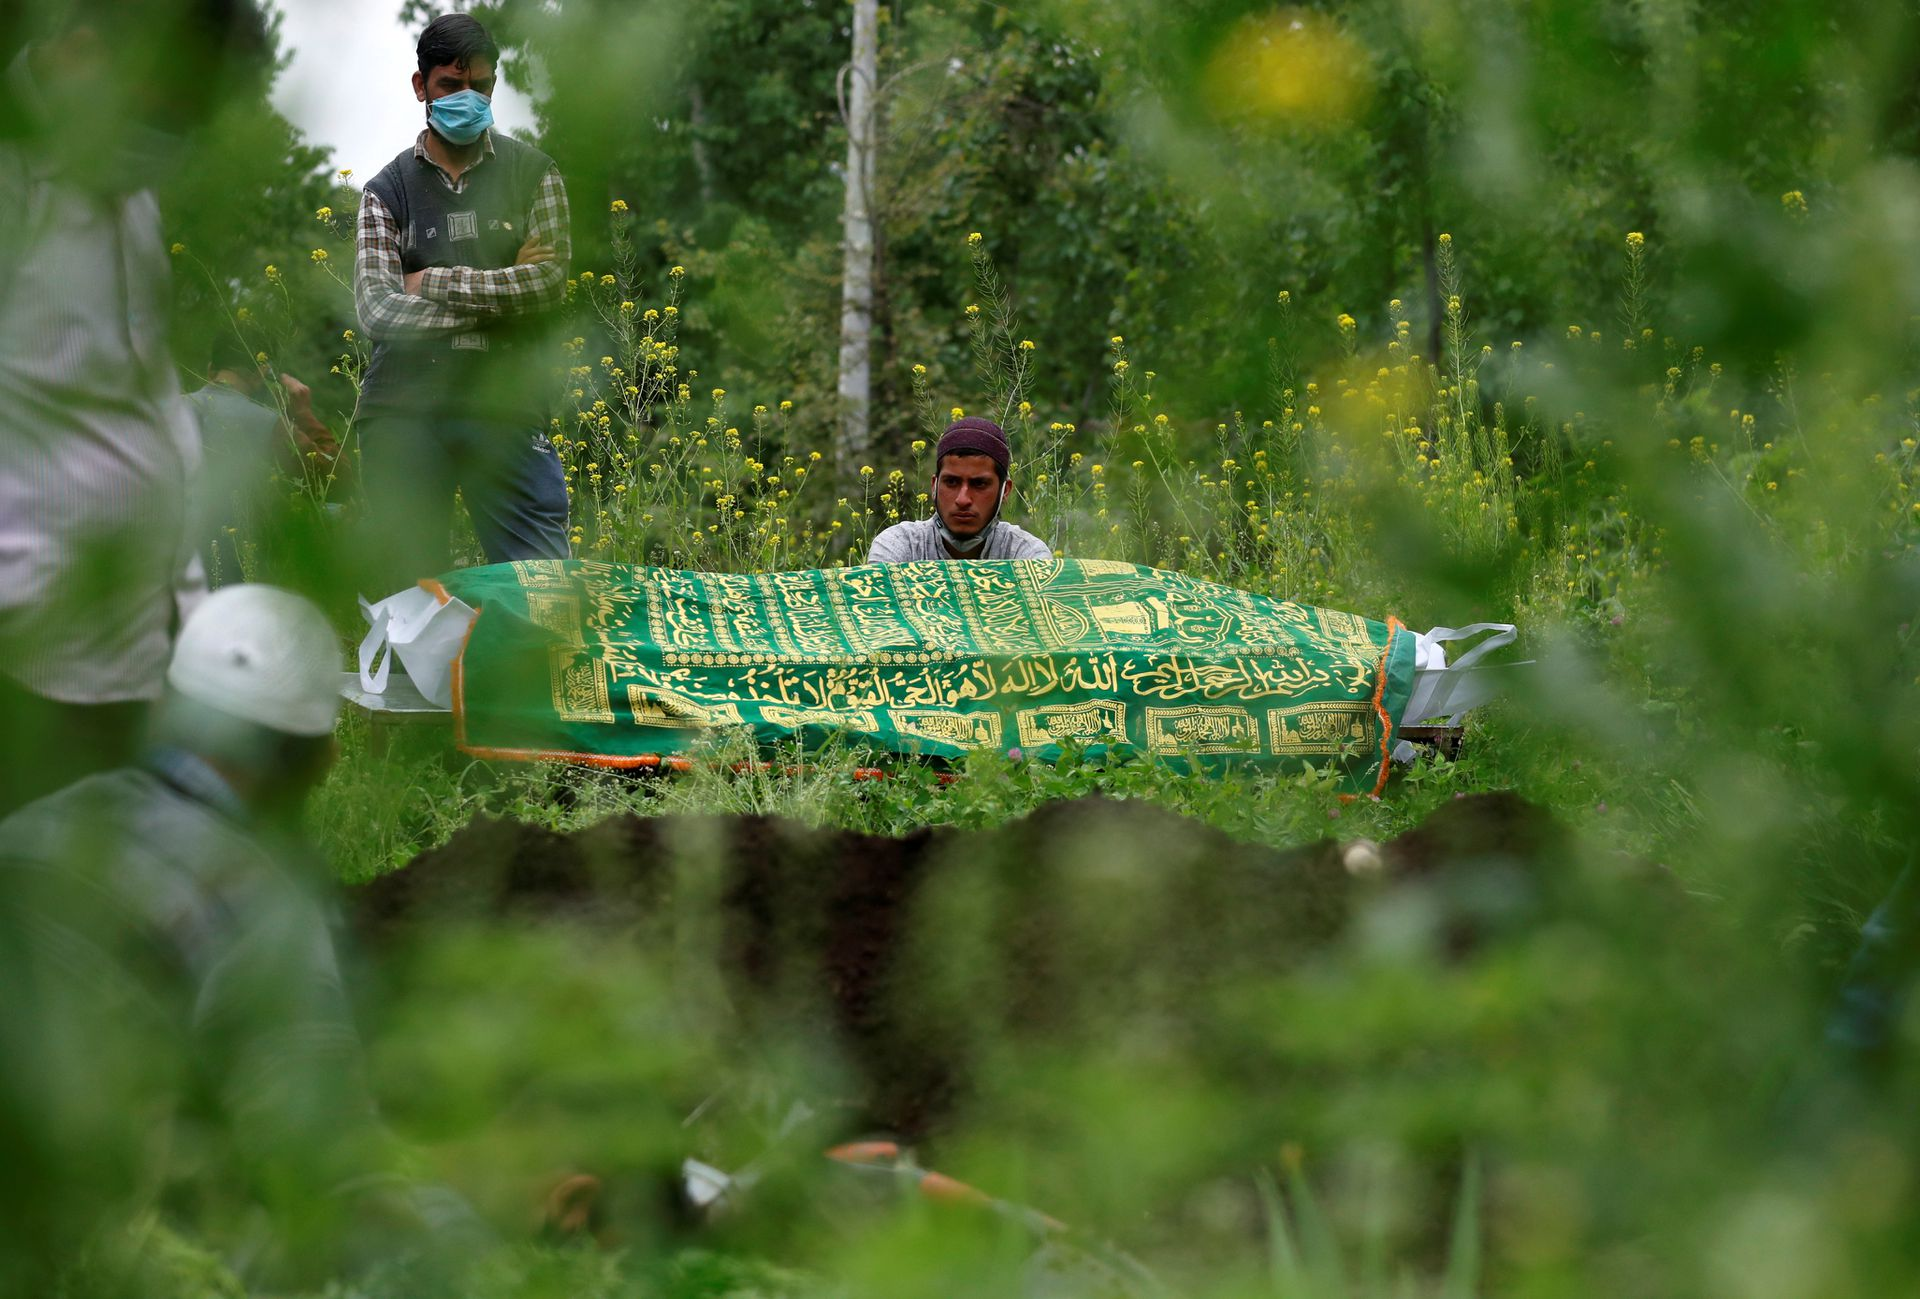 Relatives are seen next to the body of a man who died due to the coronavirus disease (COVID-19), as they wait for a grave to be prepared for his burial at a graveyard on the outskirts of Srinagar May 4, 2021. Photo: Reuters